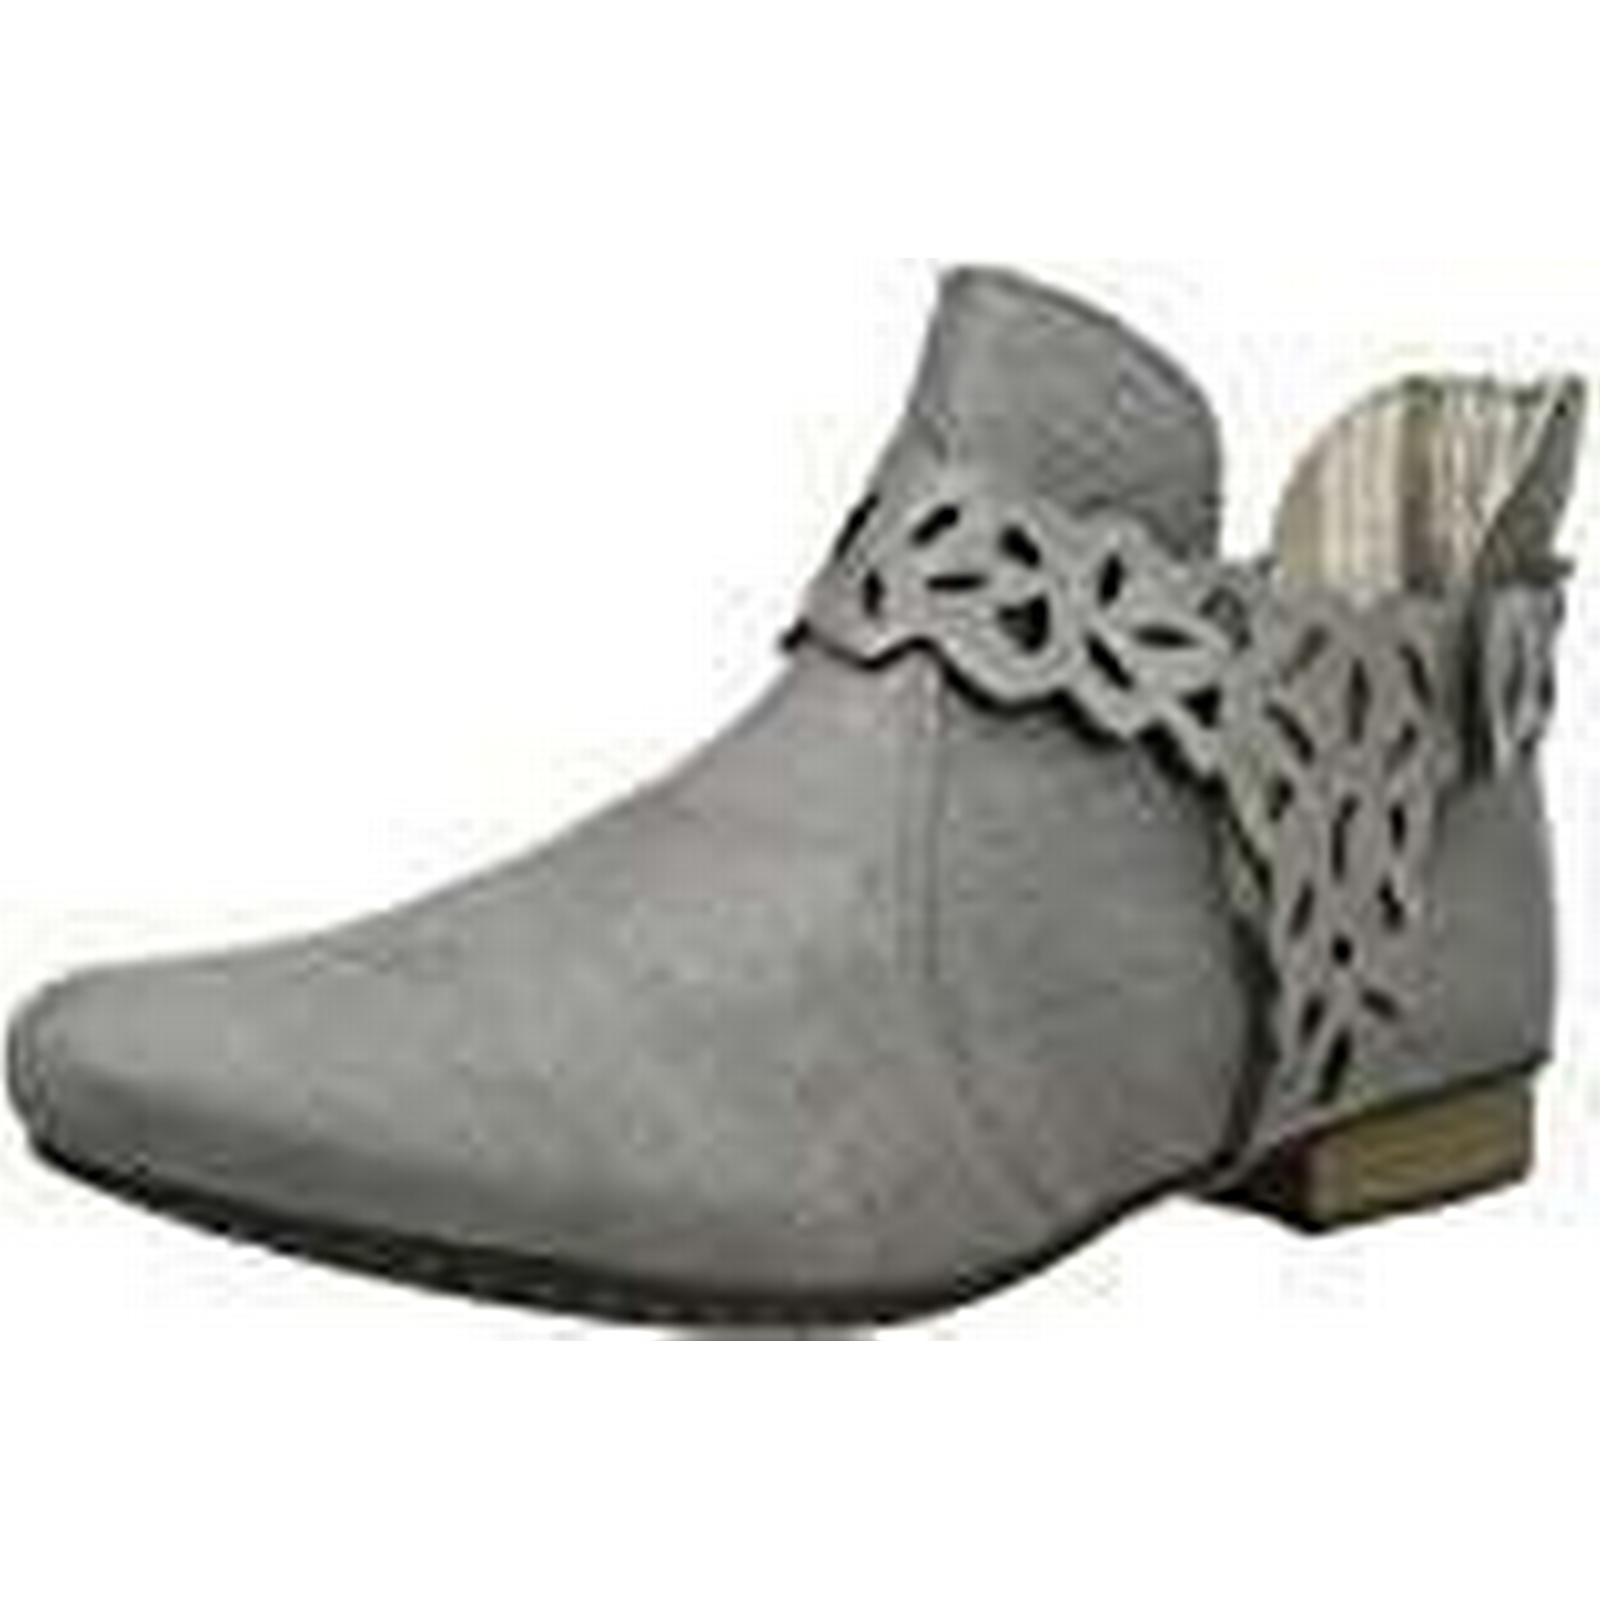 Rieker Grey Women's 71995 Ankle Boots, Grey Rieker (Steel), 6 UK b8b4f6